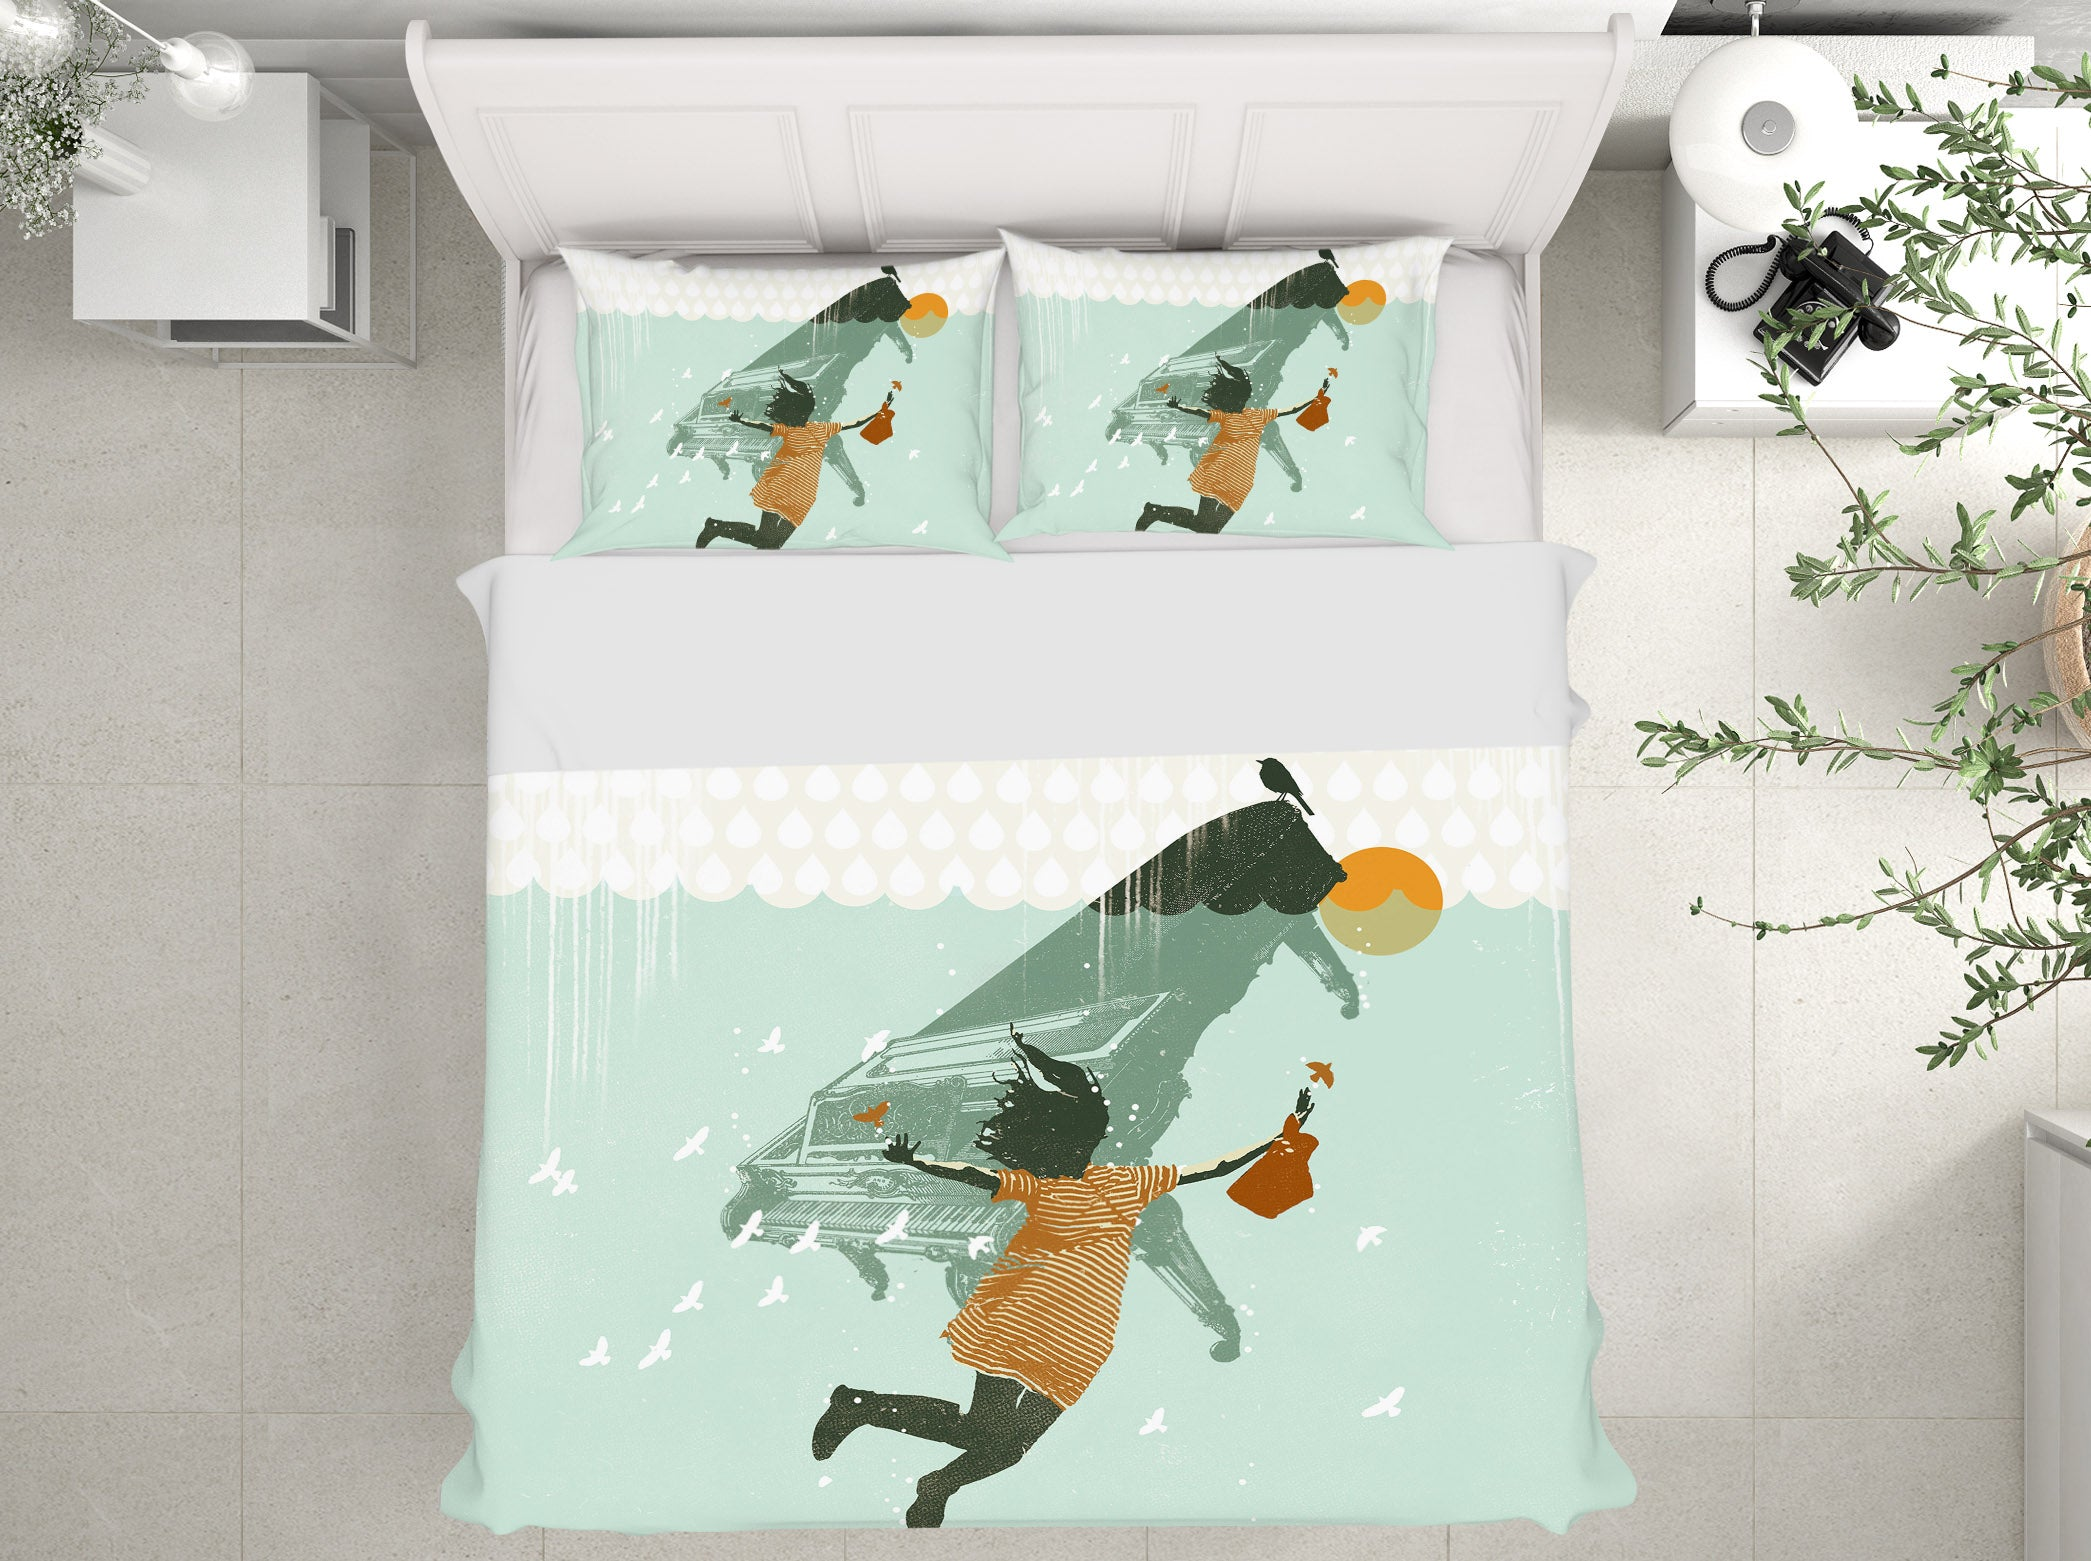 3D Swimming In Water 2119 Showdeer Bedding Bed Pillowcases Quilt